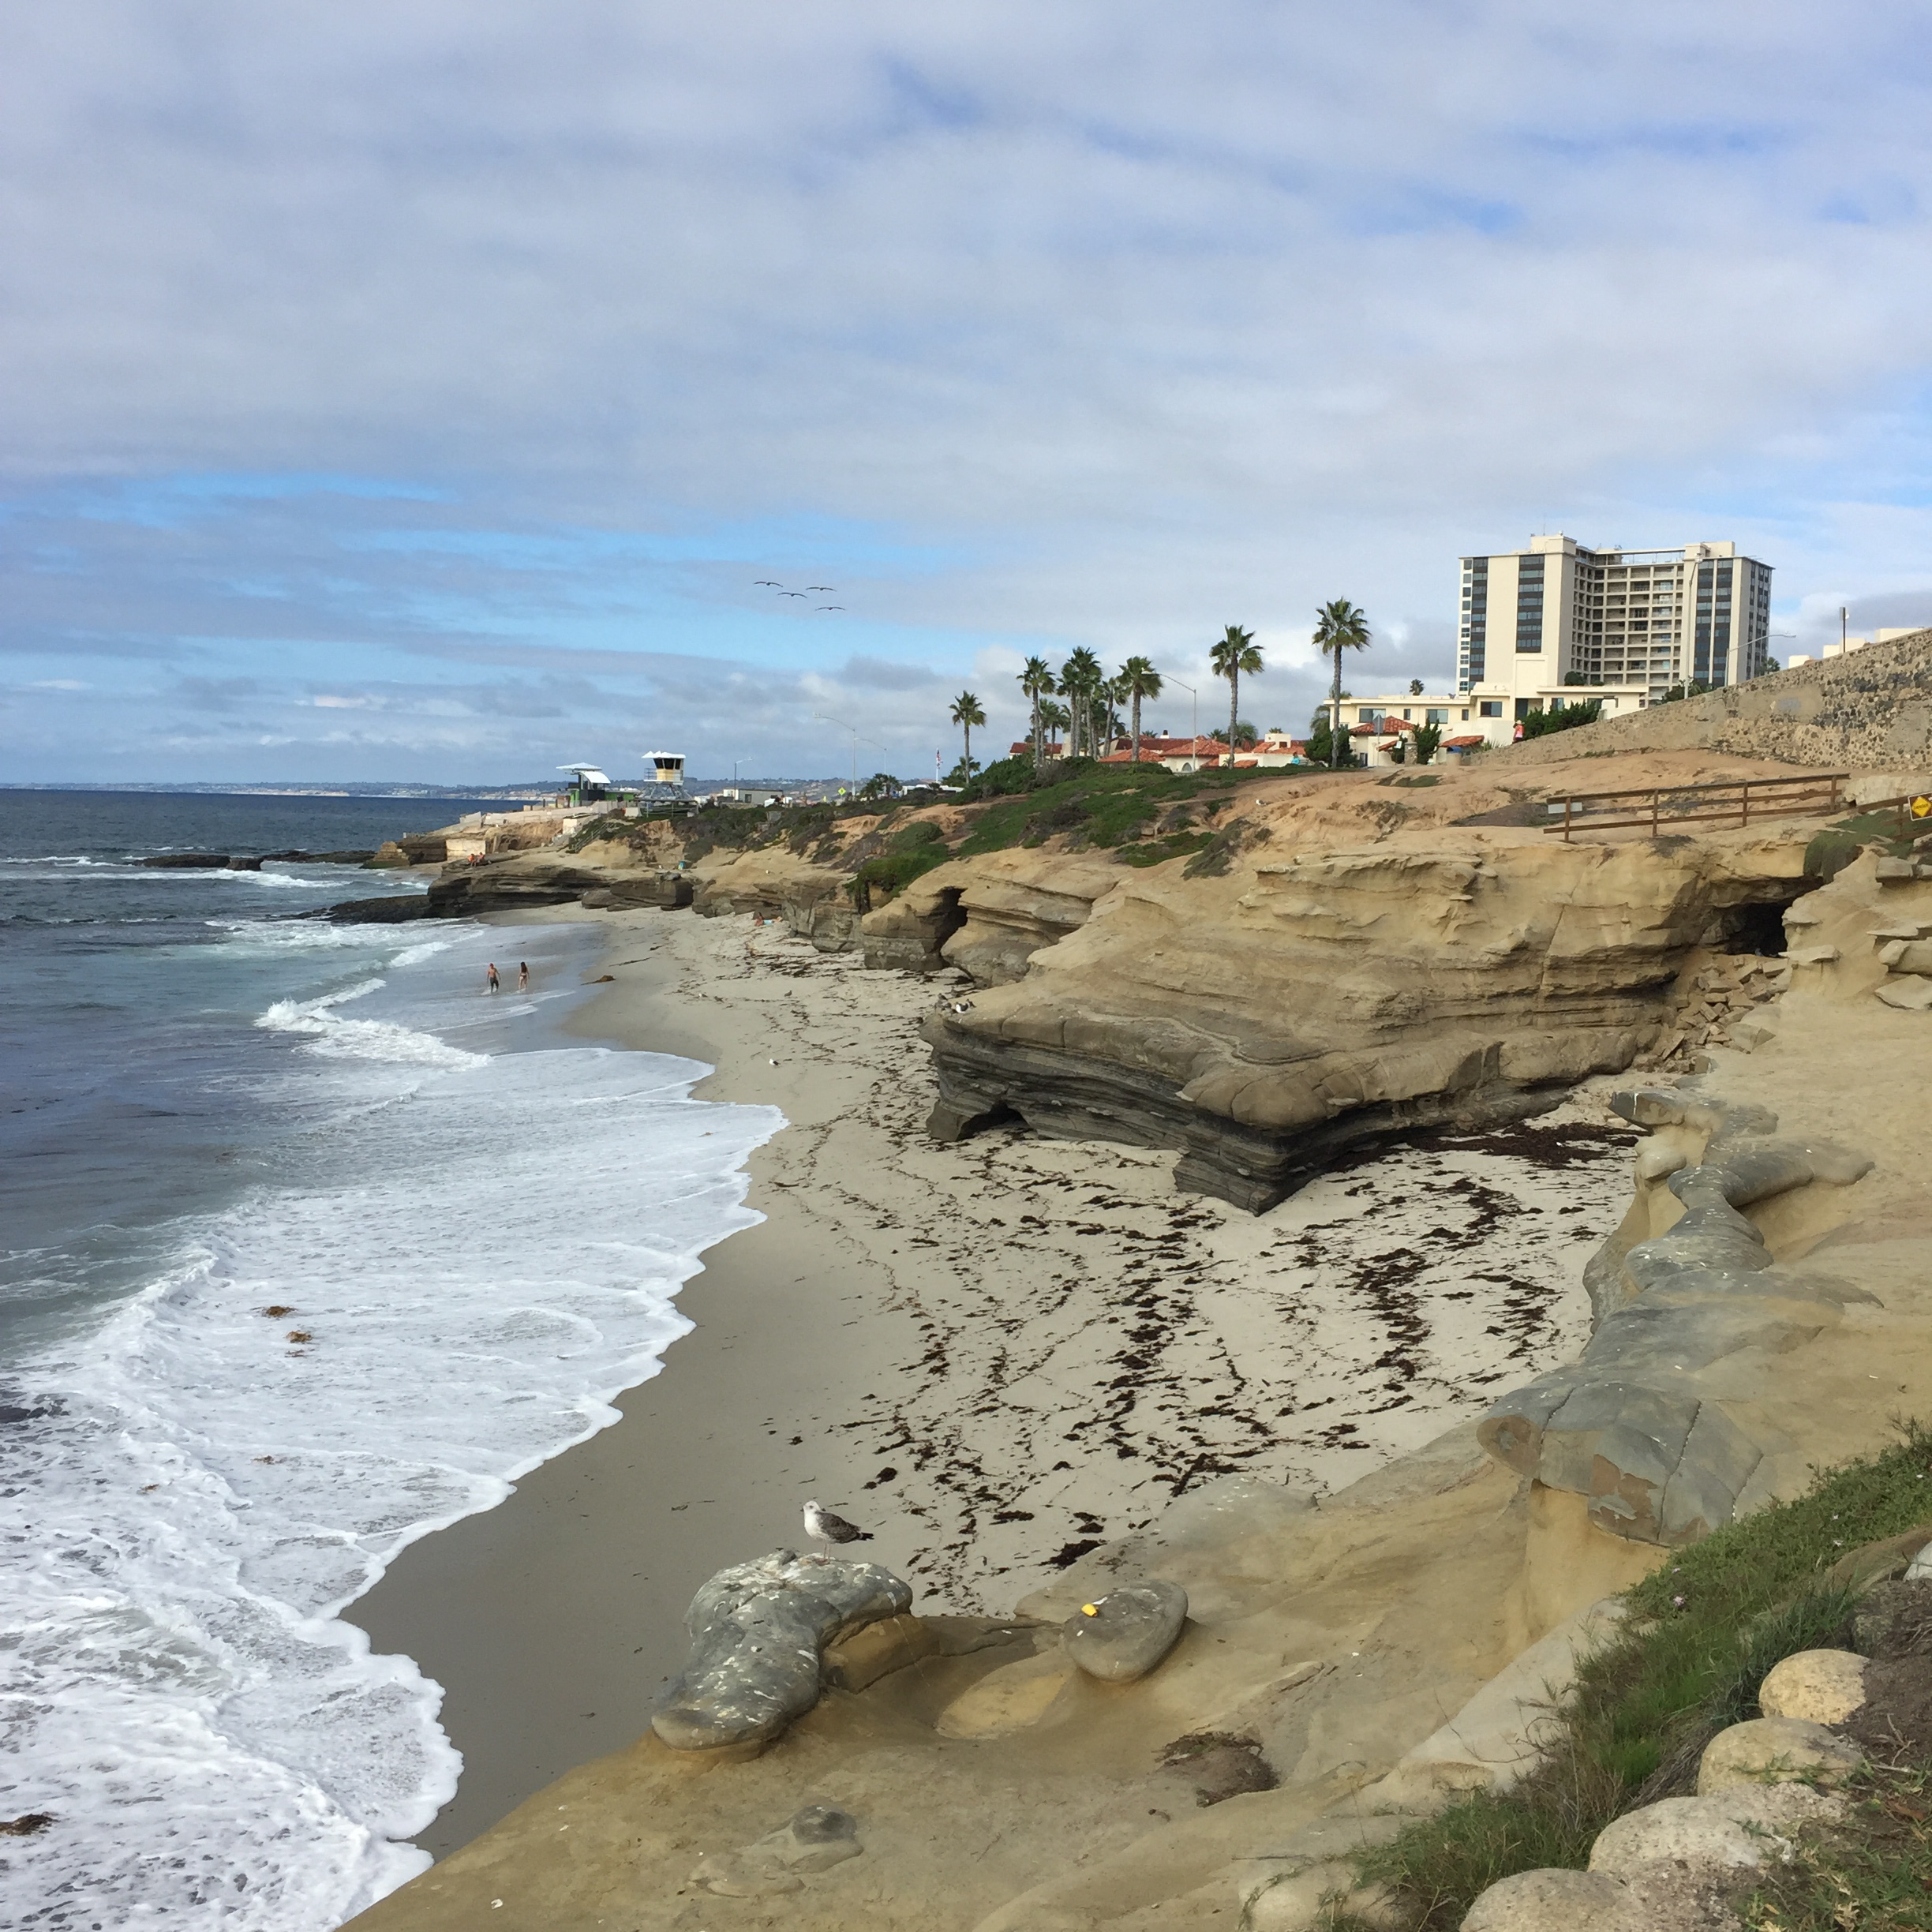 La Jolla, California // photo: VAN BRITT